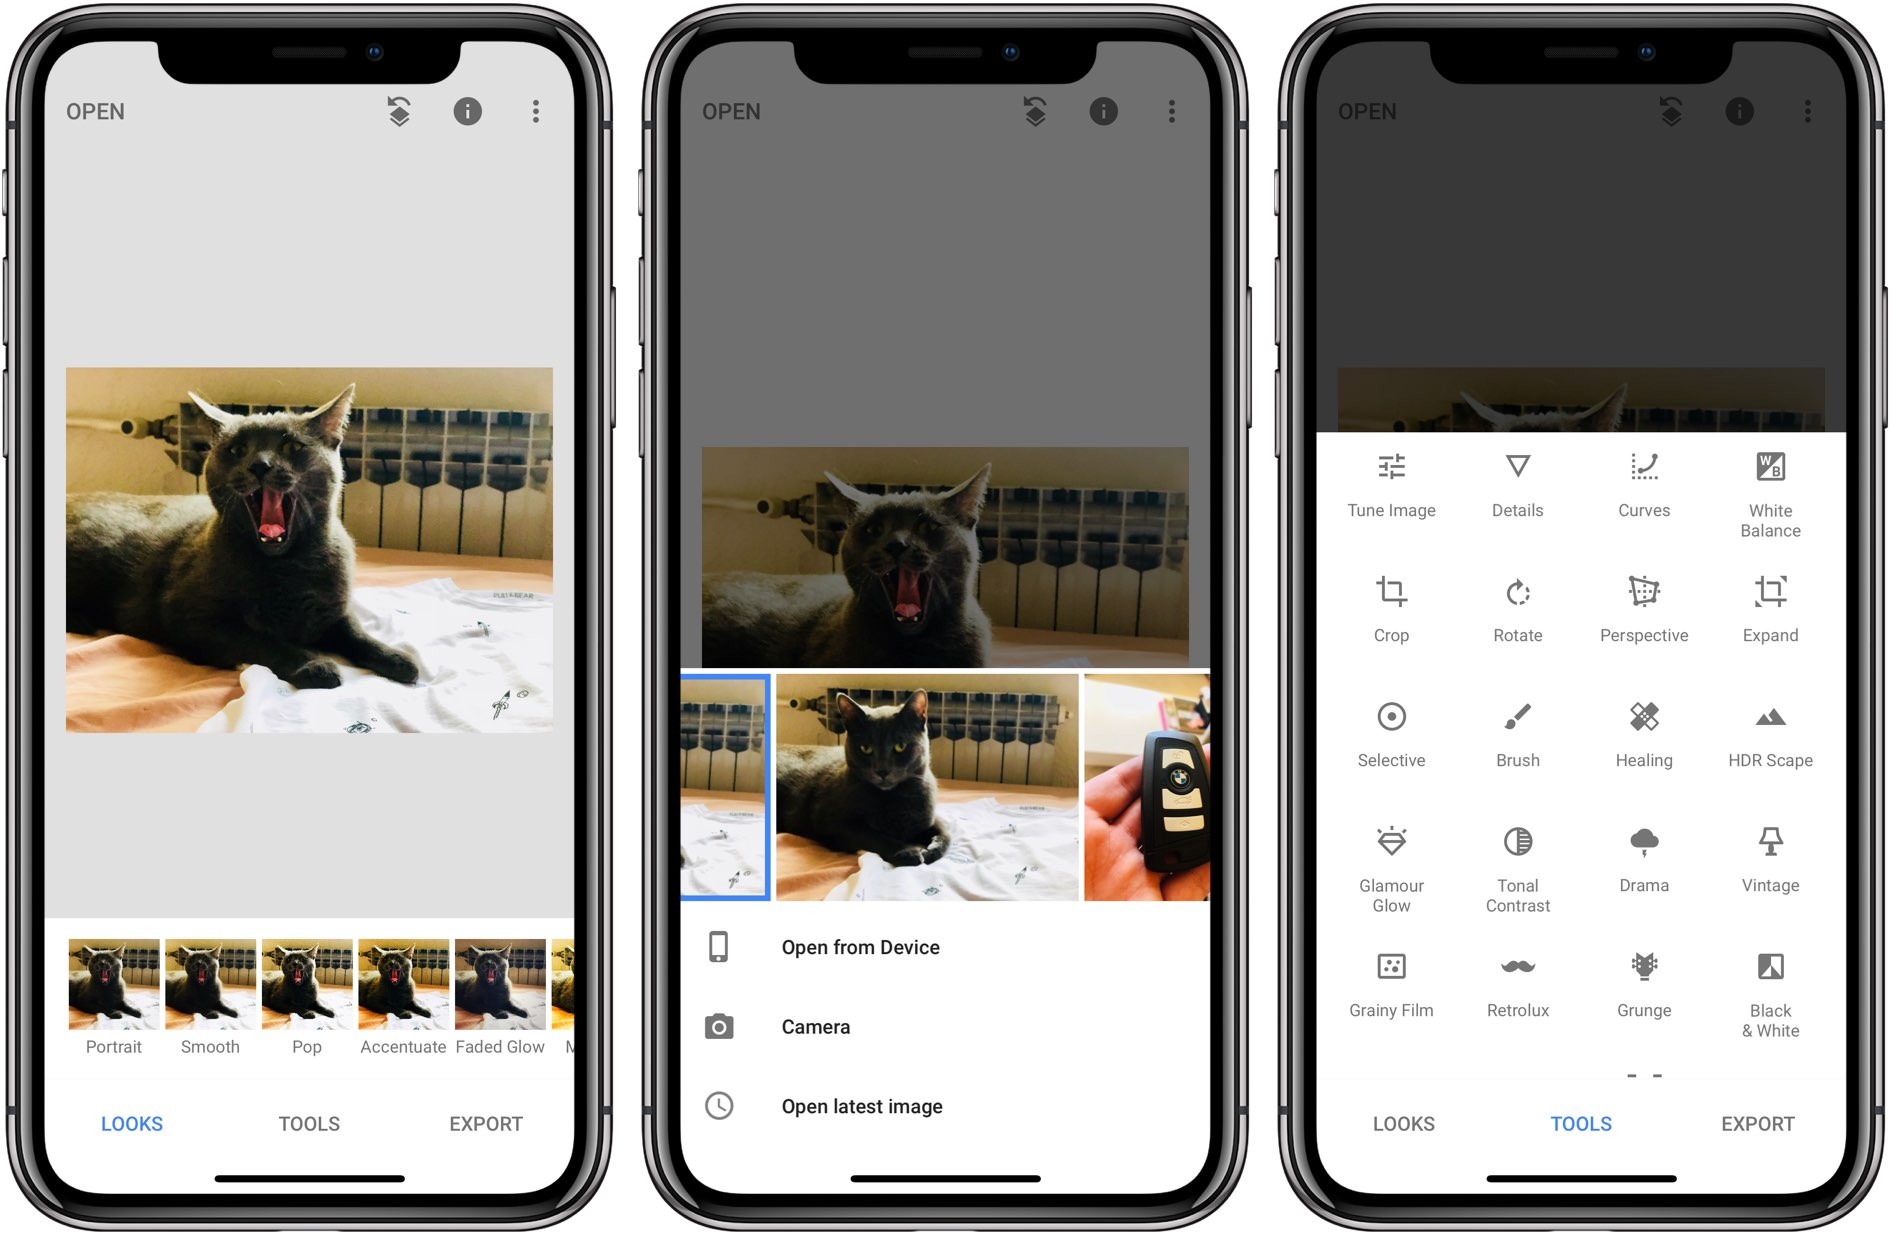 Google finally updates its Snapseed photo editor with iPhone